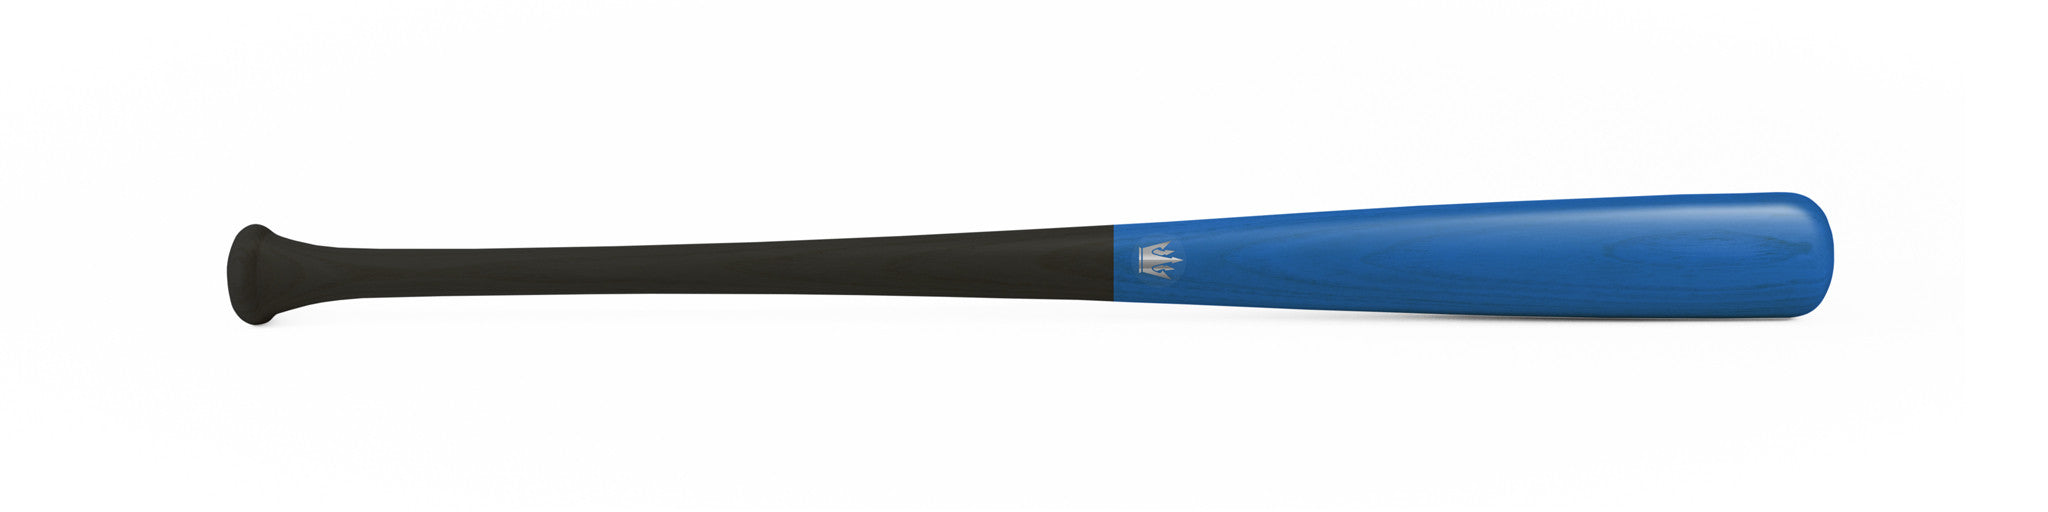 Wood bat - Ash model Y271 Black Royal - 23